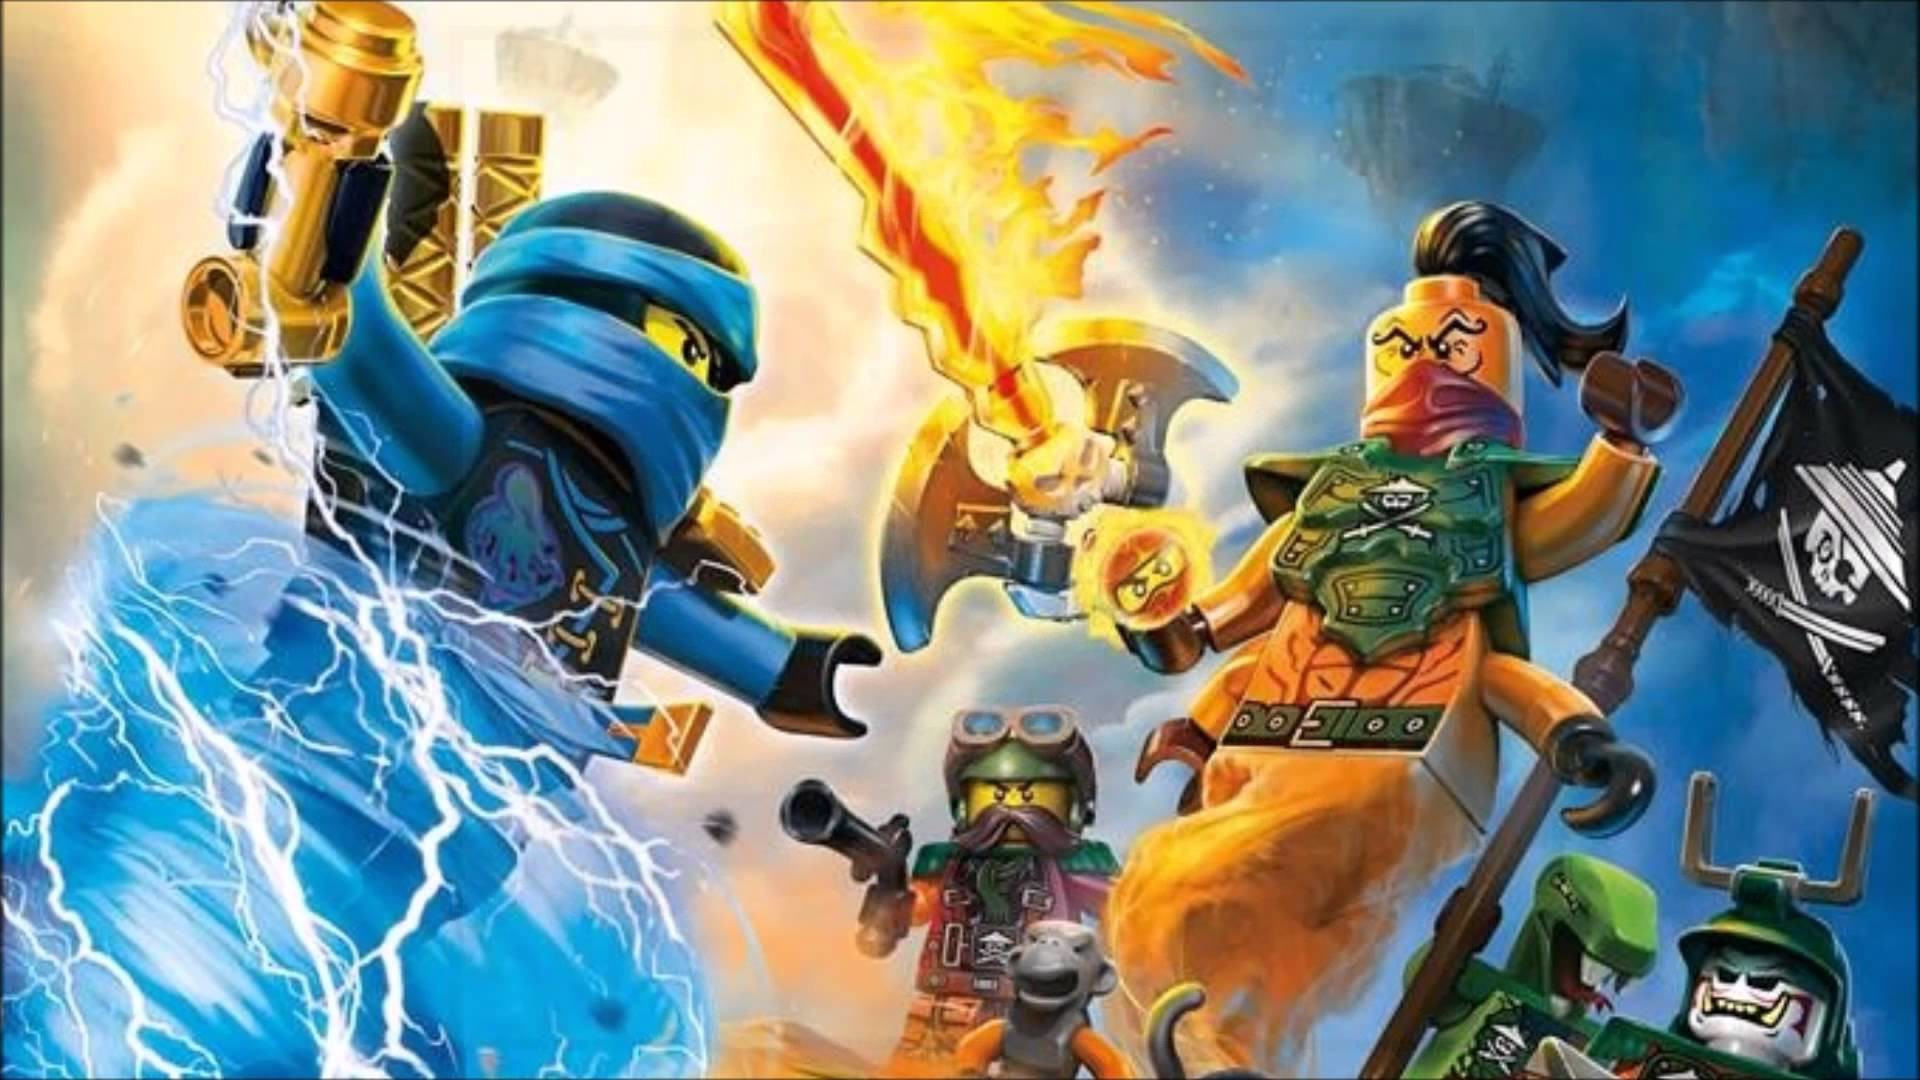 1920x1080 lego ninjago wallpaper HD – wallpapermonkey.com